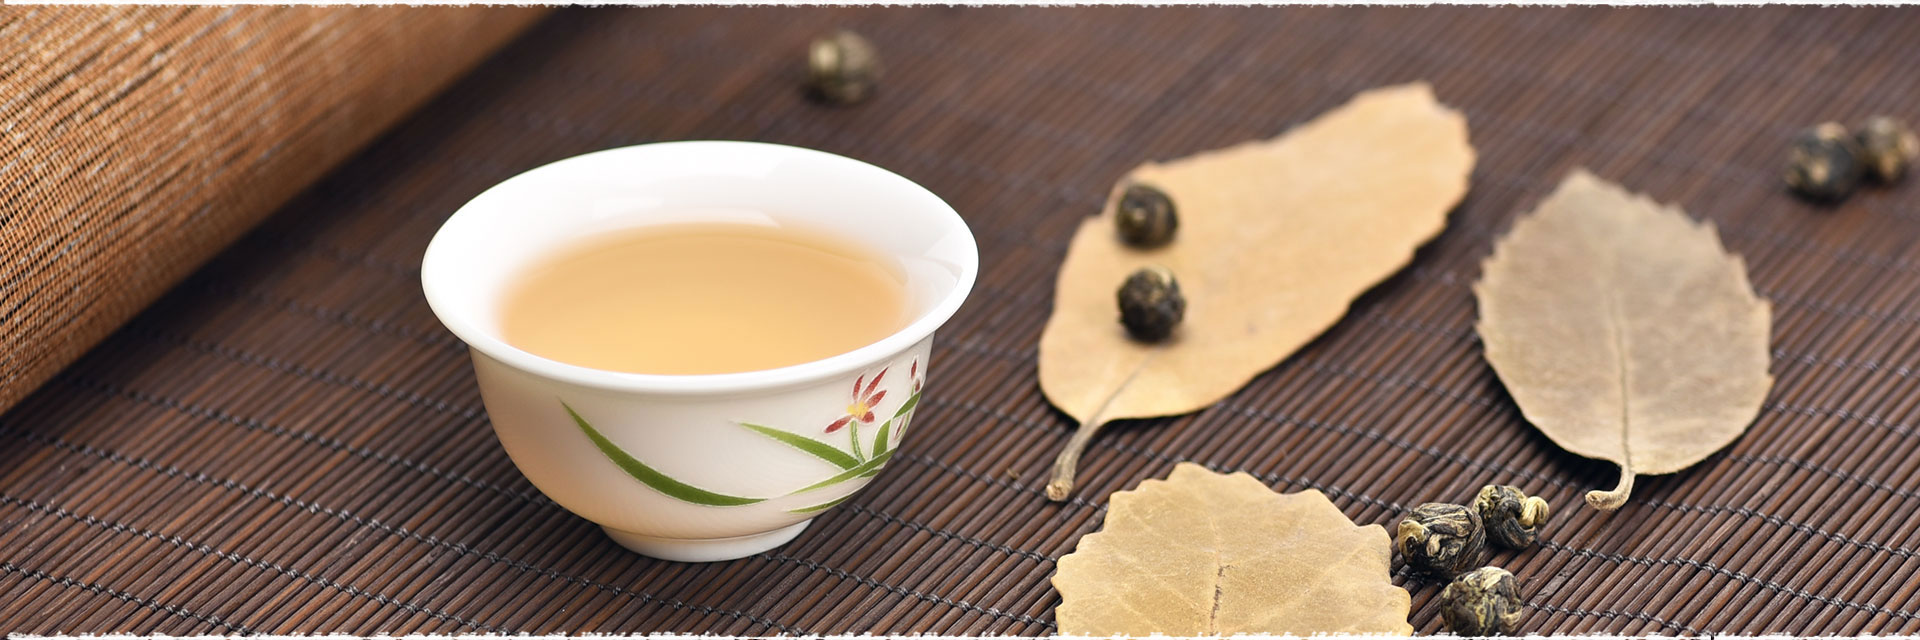 Can I drink green tea during pregnancy?